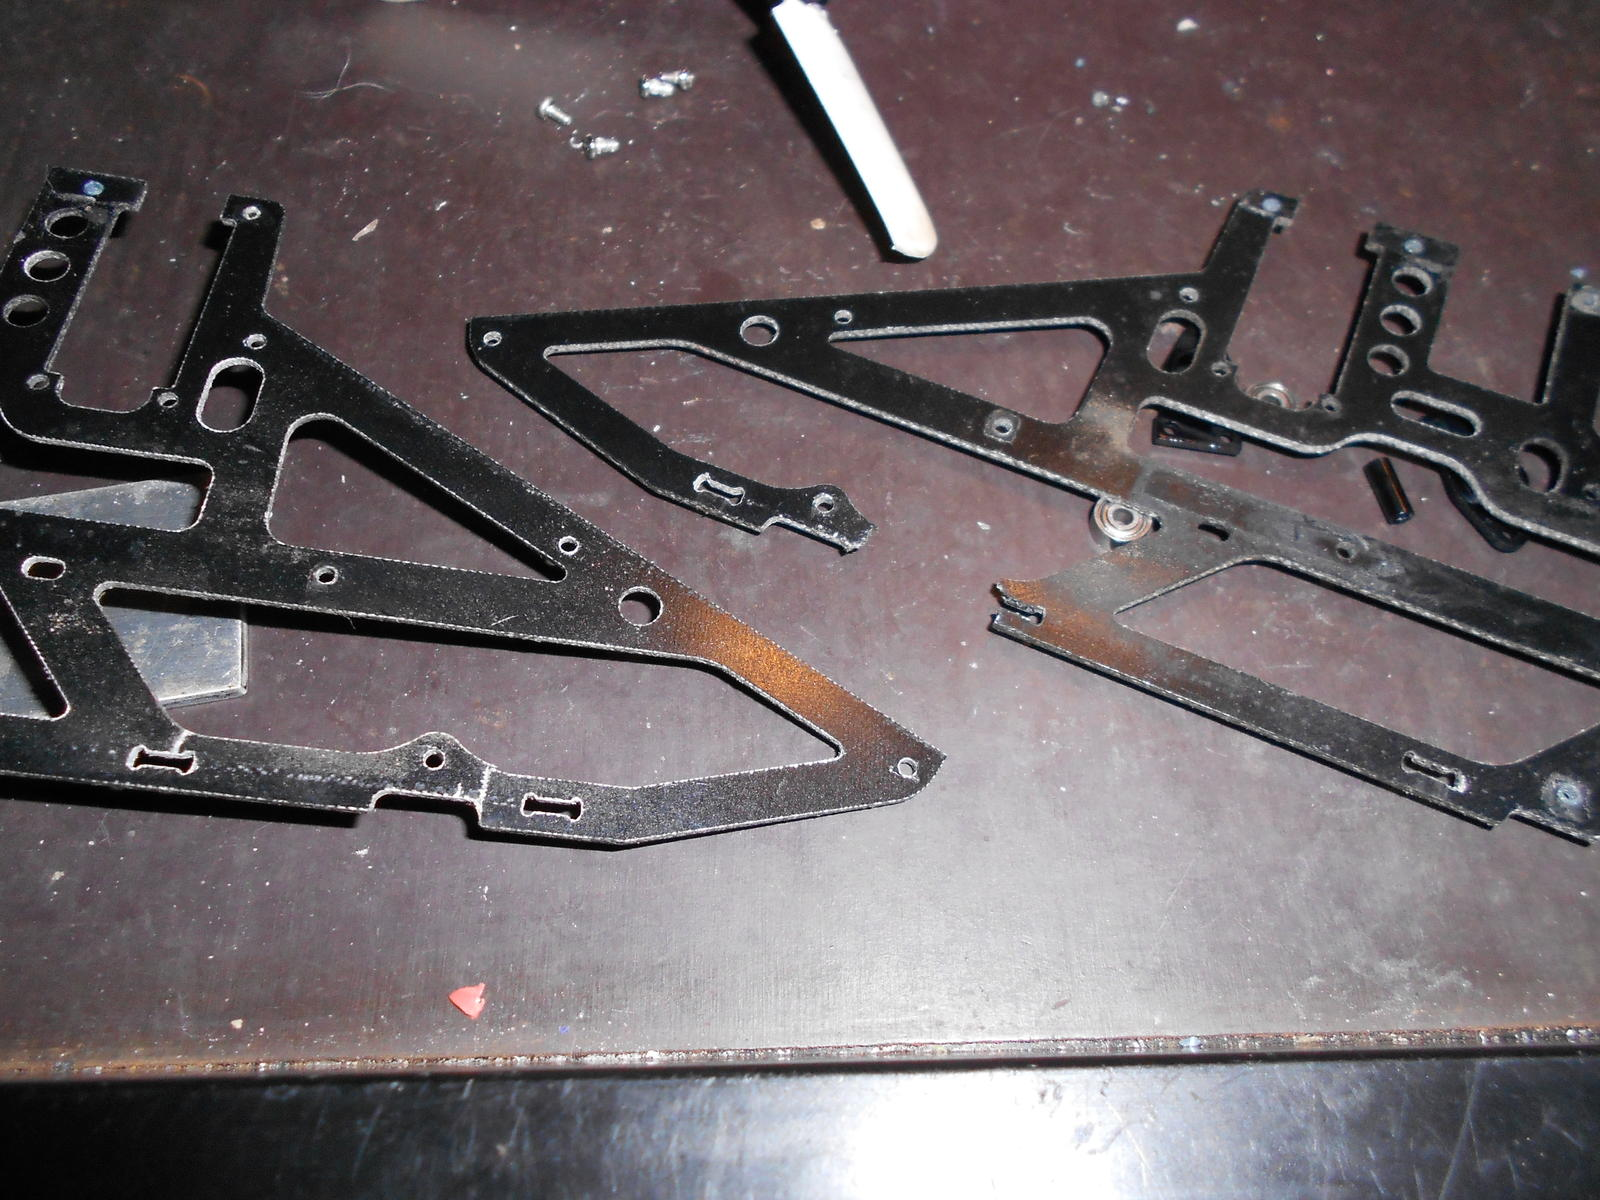 The old broken frame pieces.